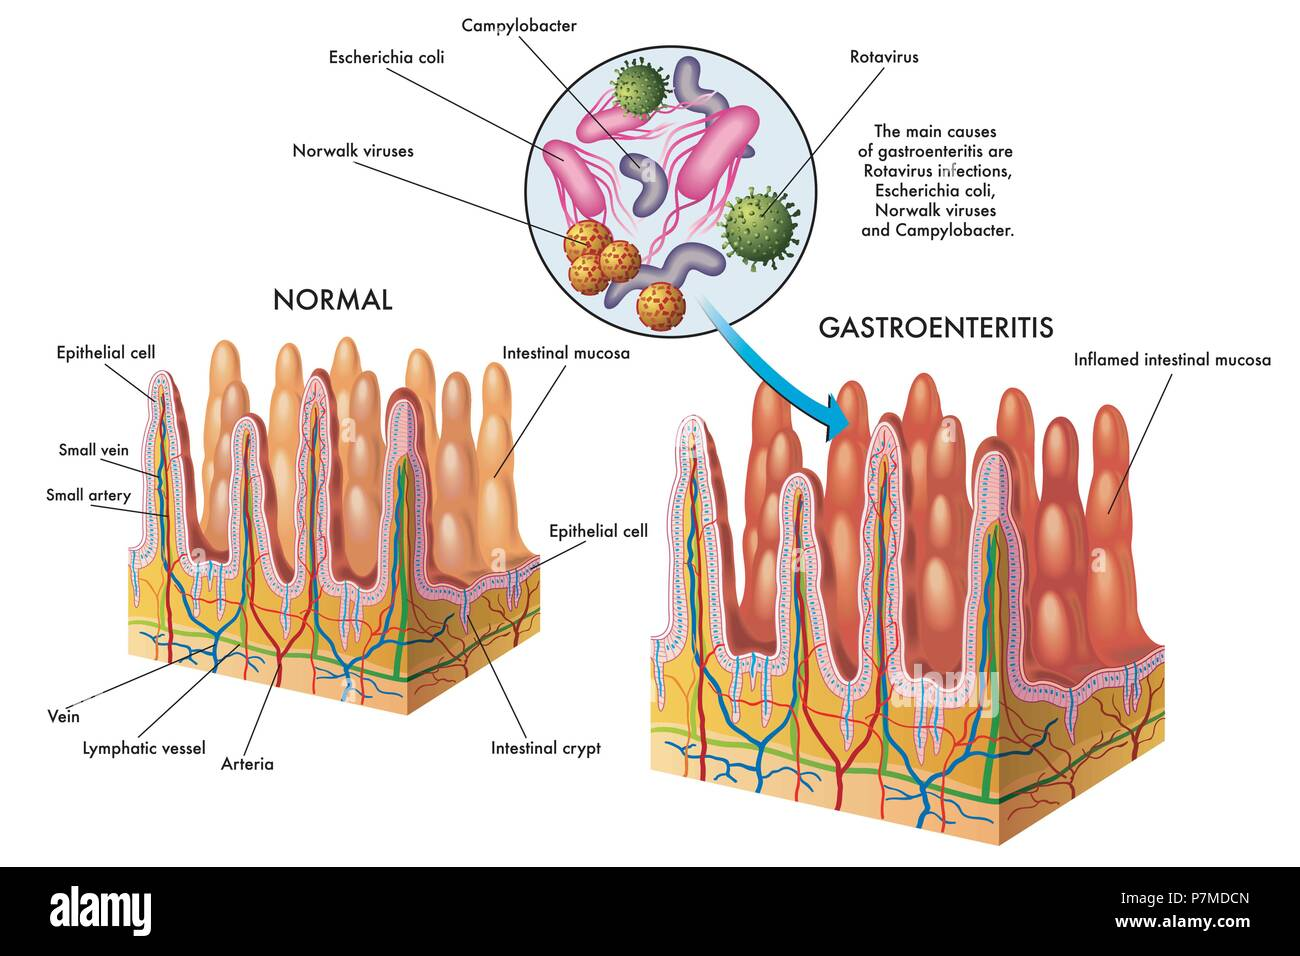 vector medical illustration of the main causes of gastroenteritis - Stock Image